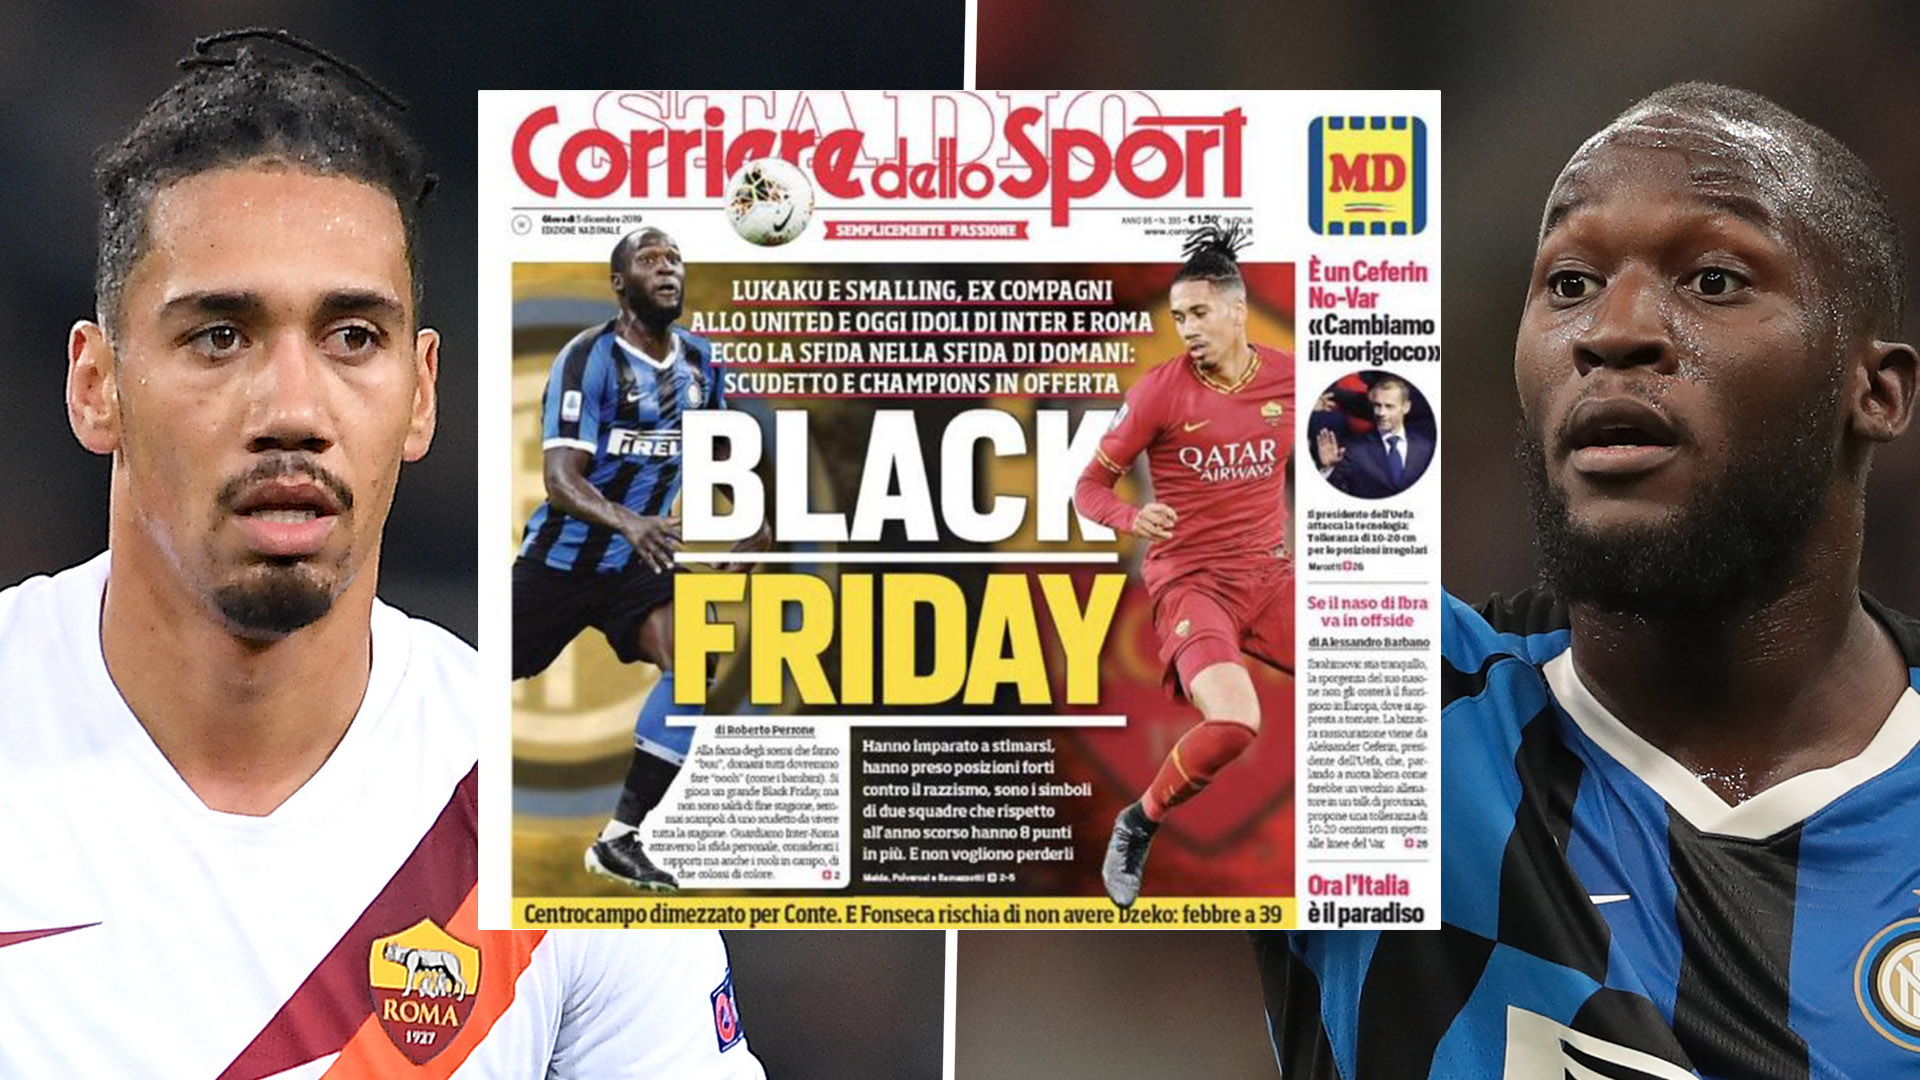 Roma Lead Criticisms Of Controversial Black Friday Newspaper Front Page Featuring Lukaku Smalling Goal Com